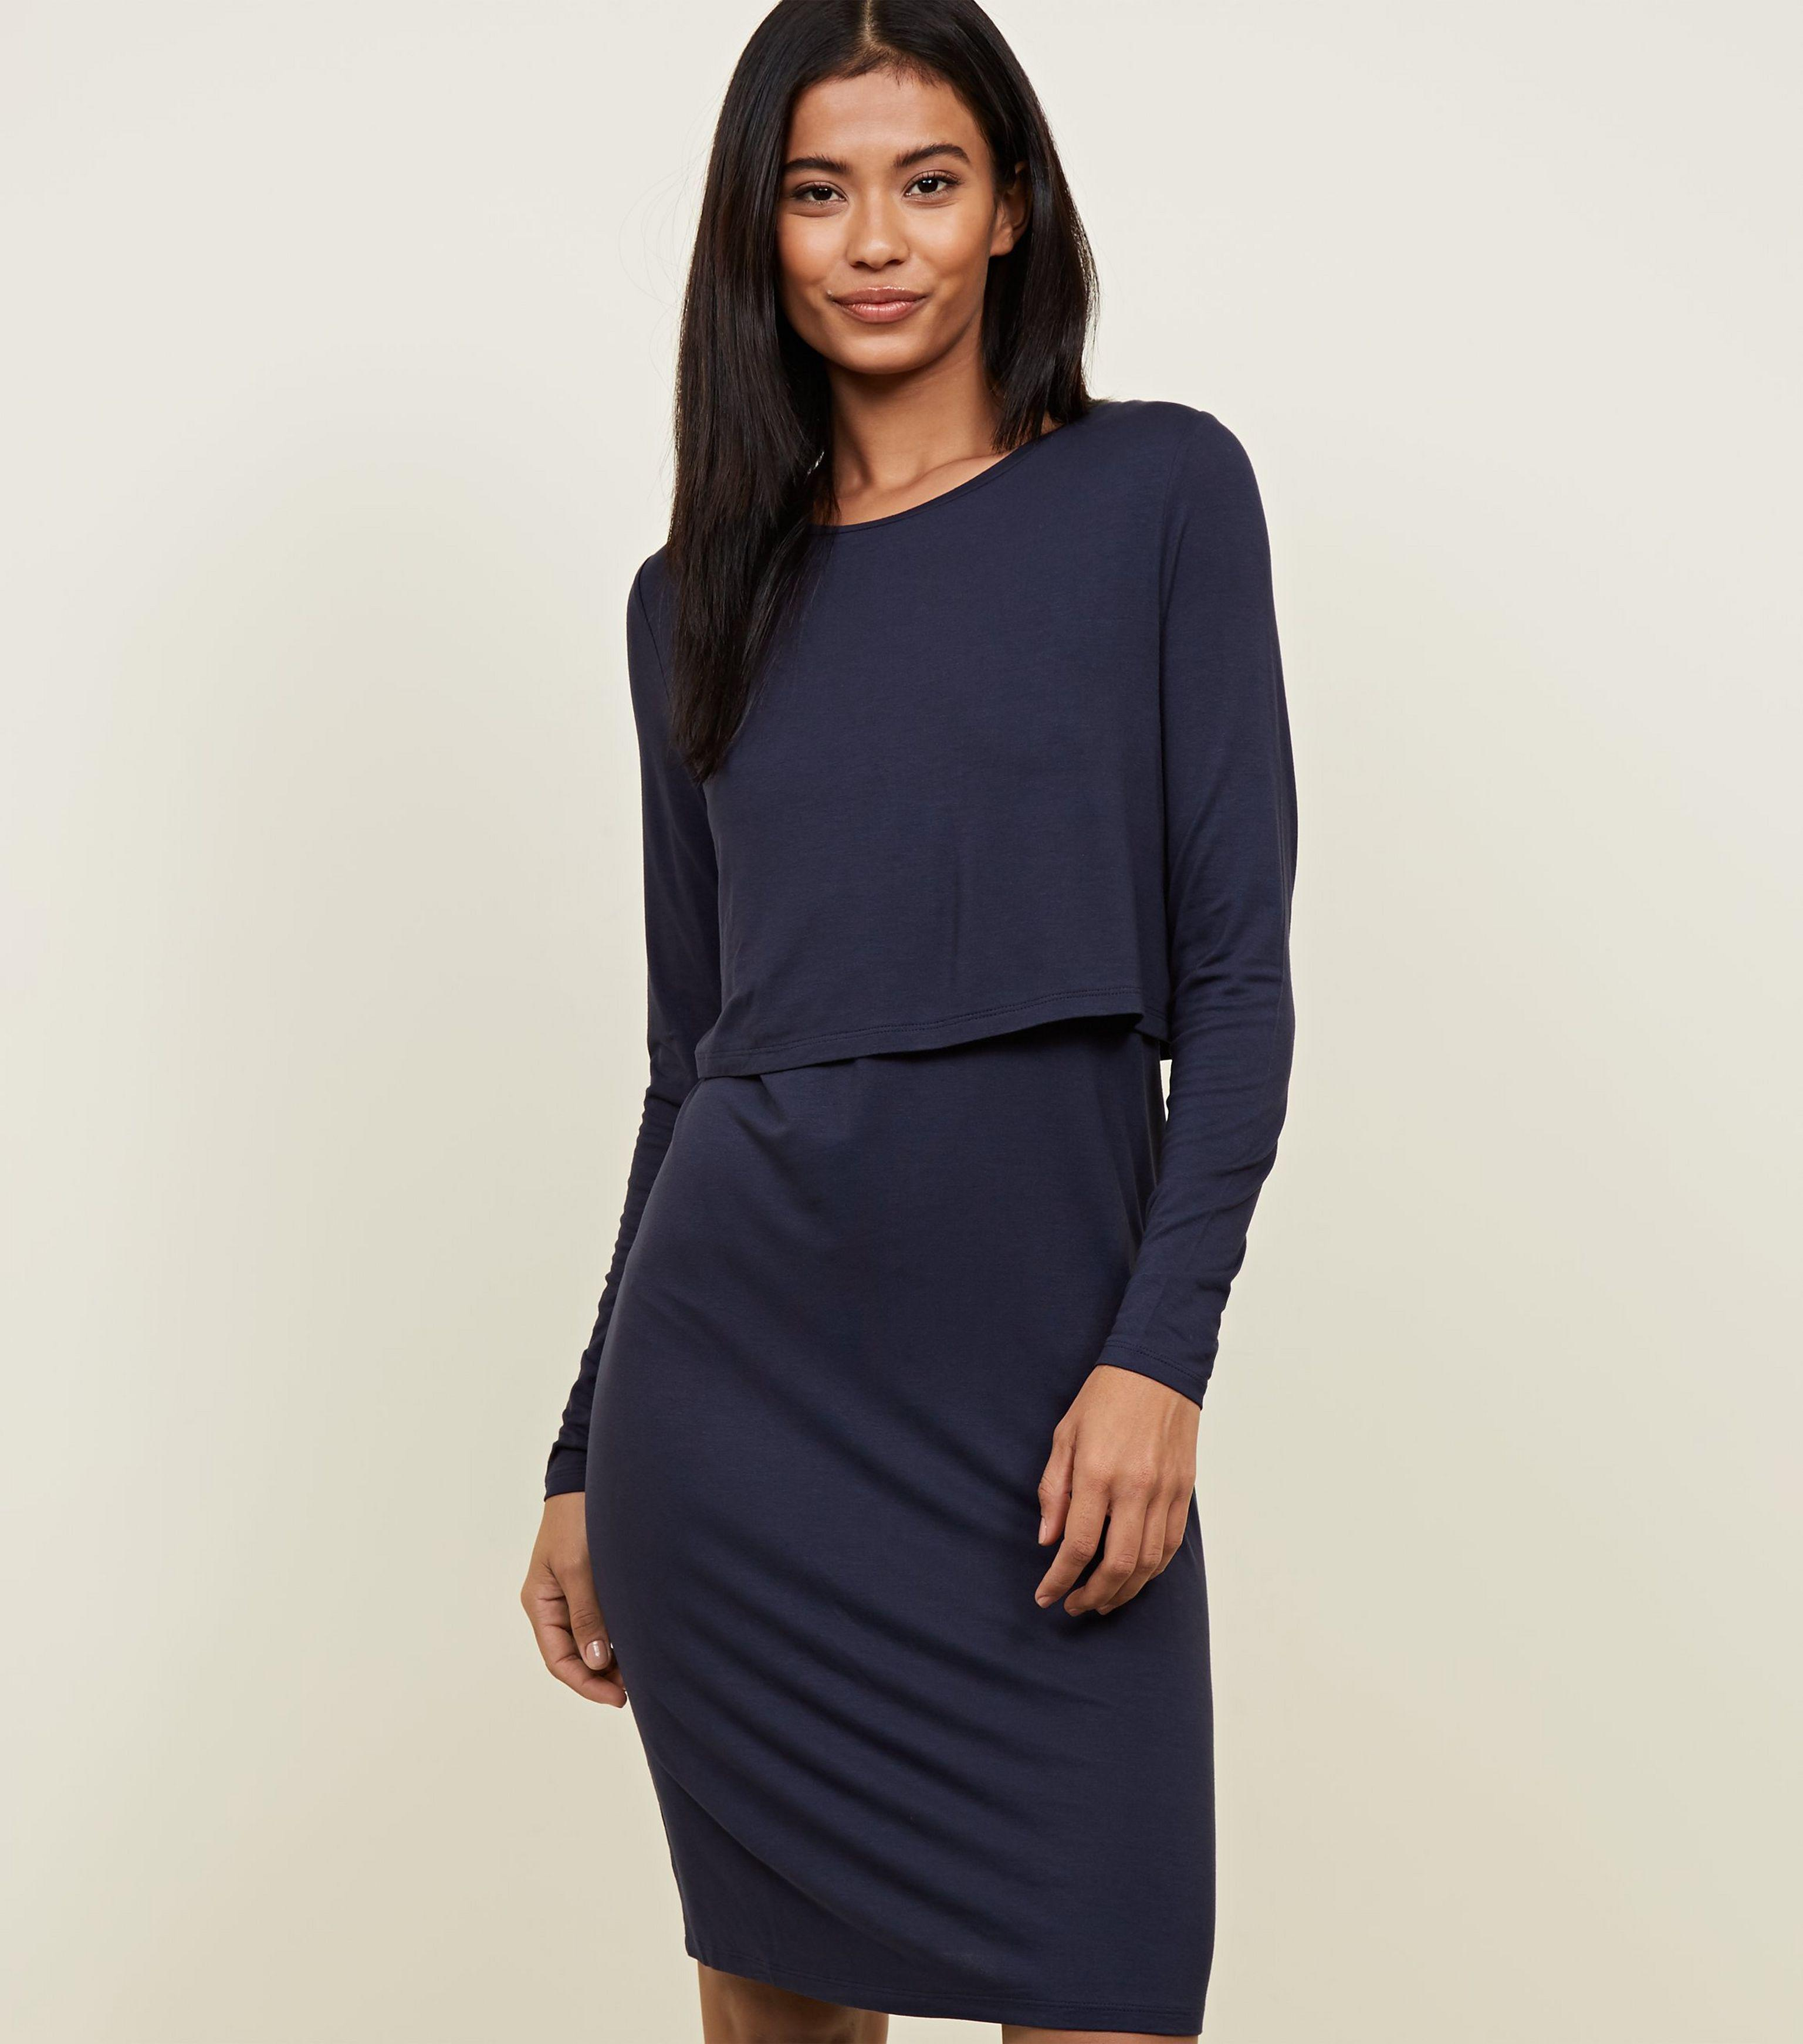 3e3c45a812d47 New Look Maternity Navy Long Sleeve Layered Nursing Dress in Blue - Lyst